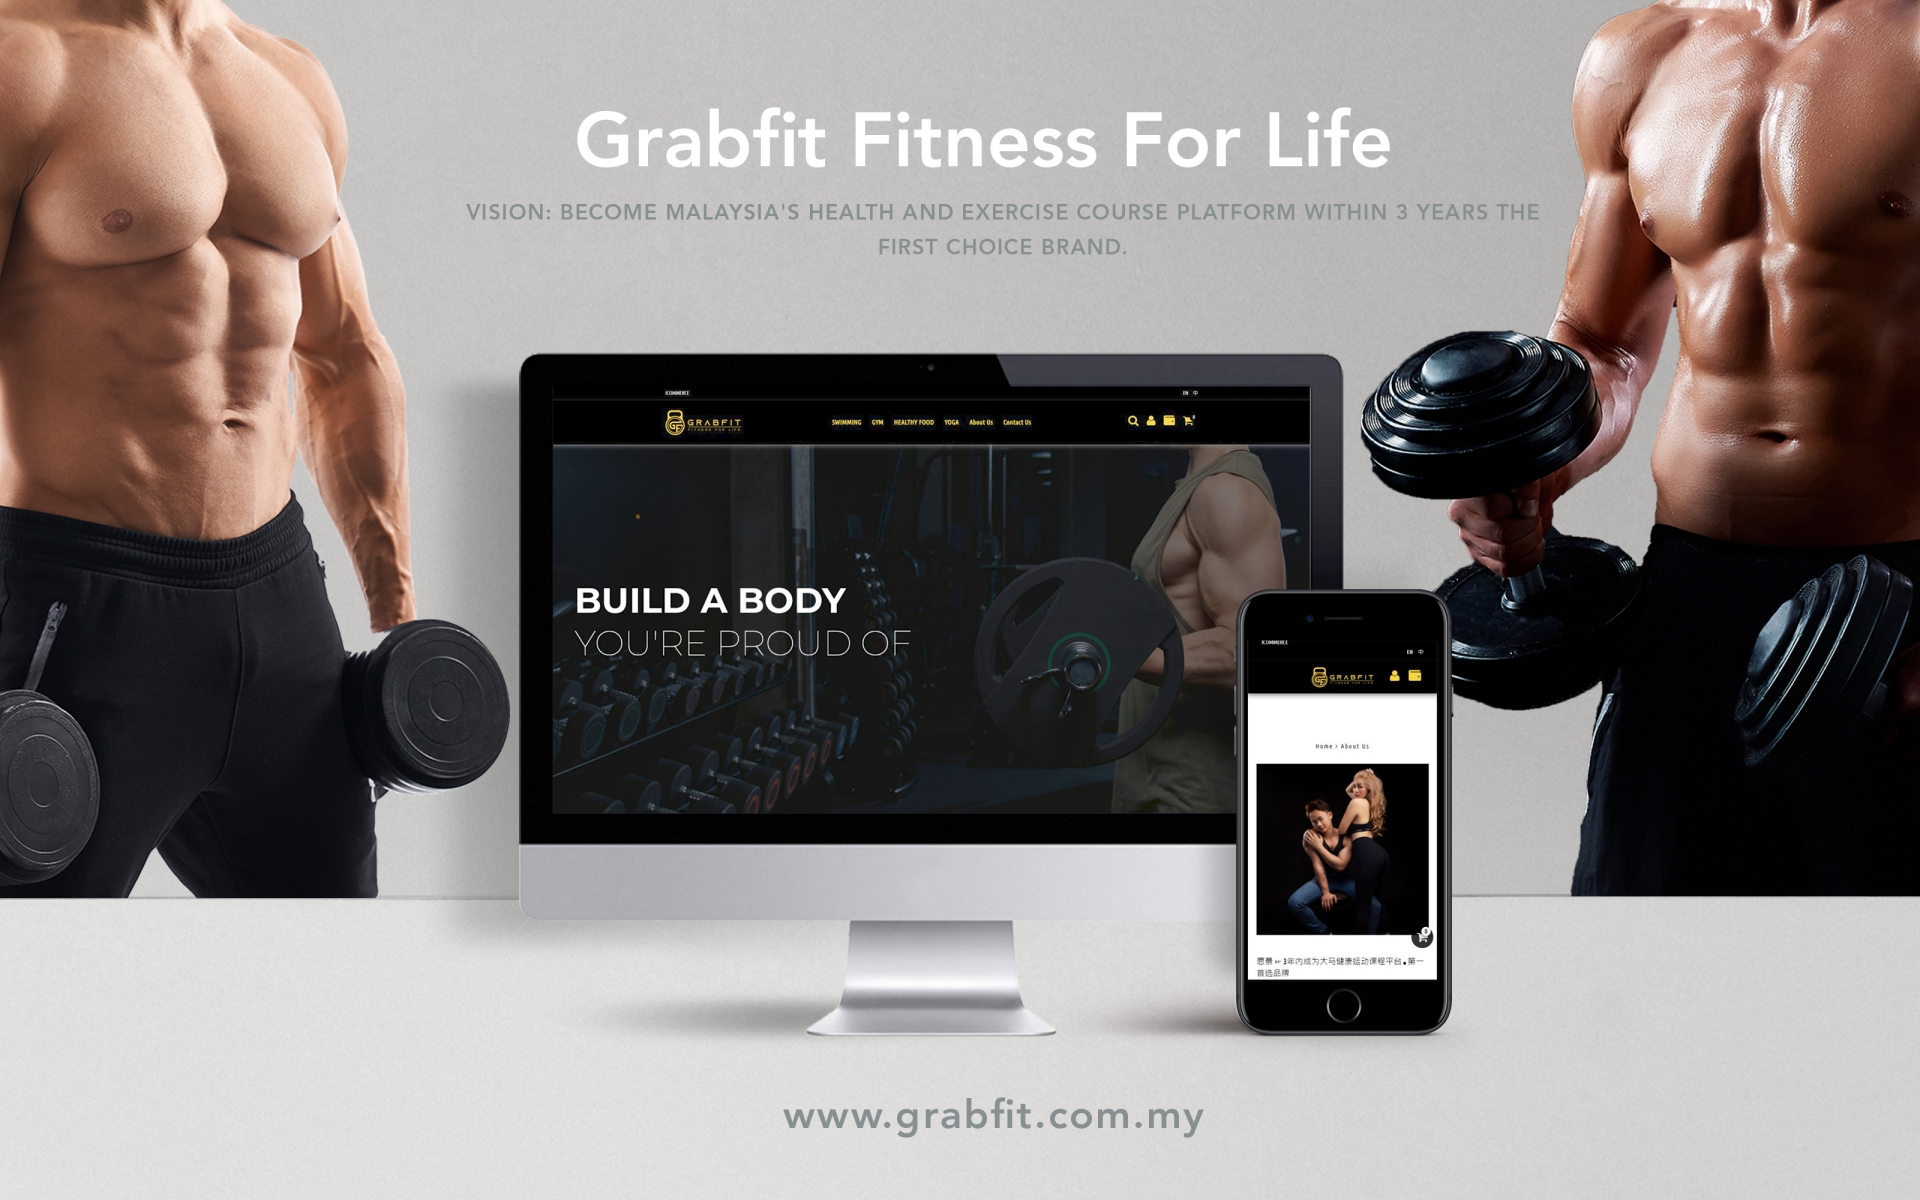 "<a href=""http://grabfit.com.my"" target=""_blank"">Grbfit Fitness For Life</a>"